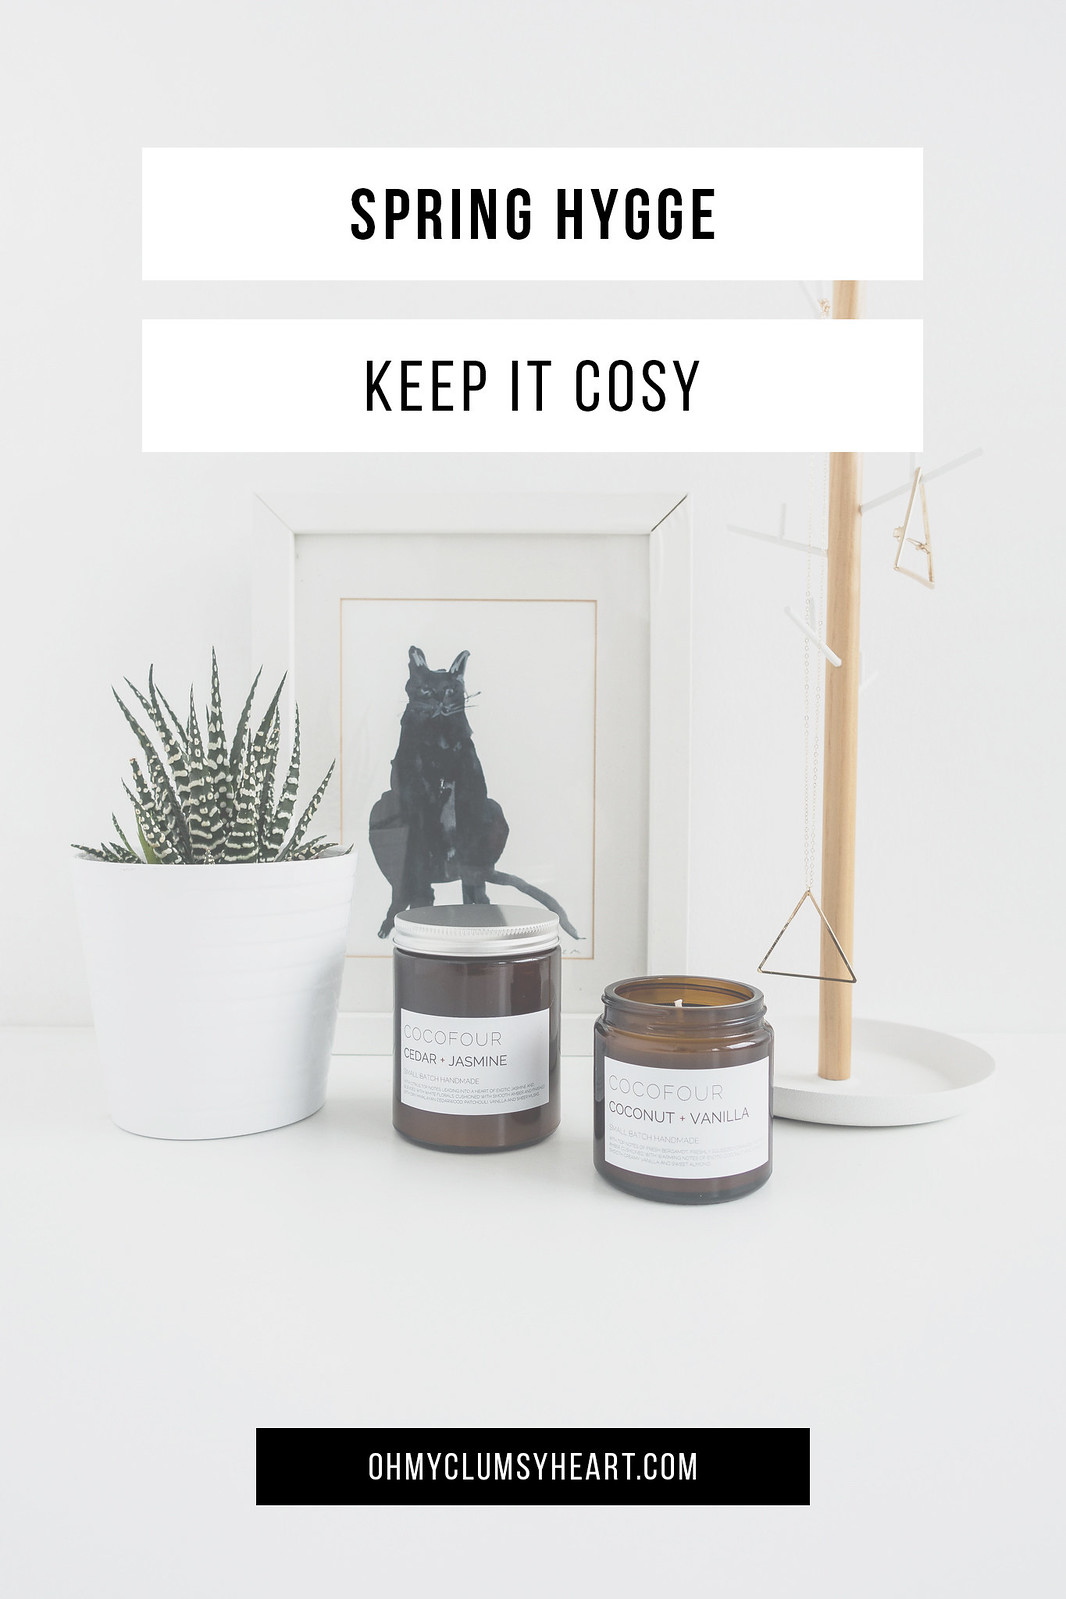 Keep It Cosy: Spring Hygge